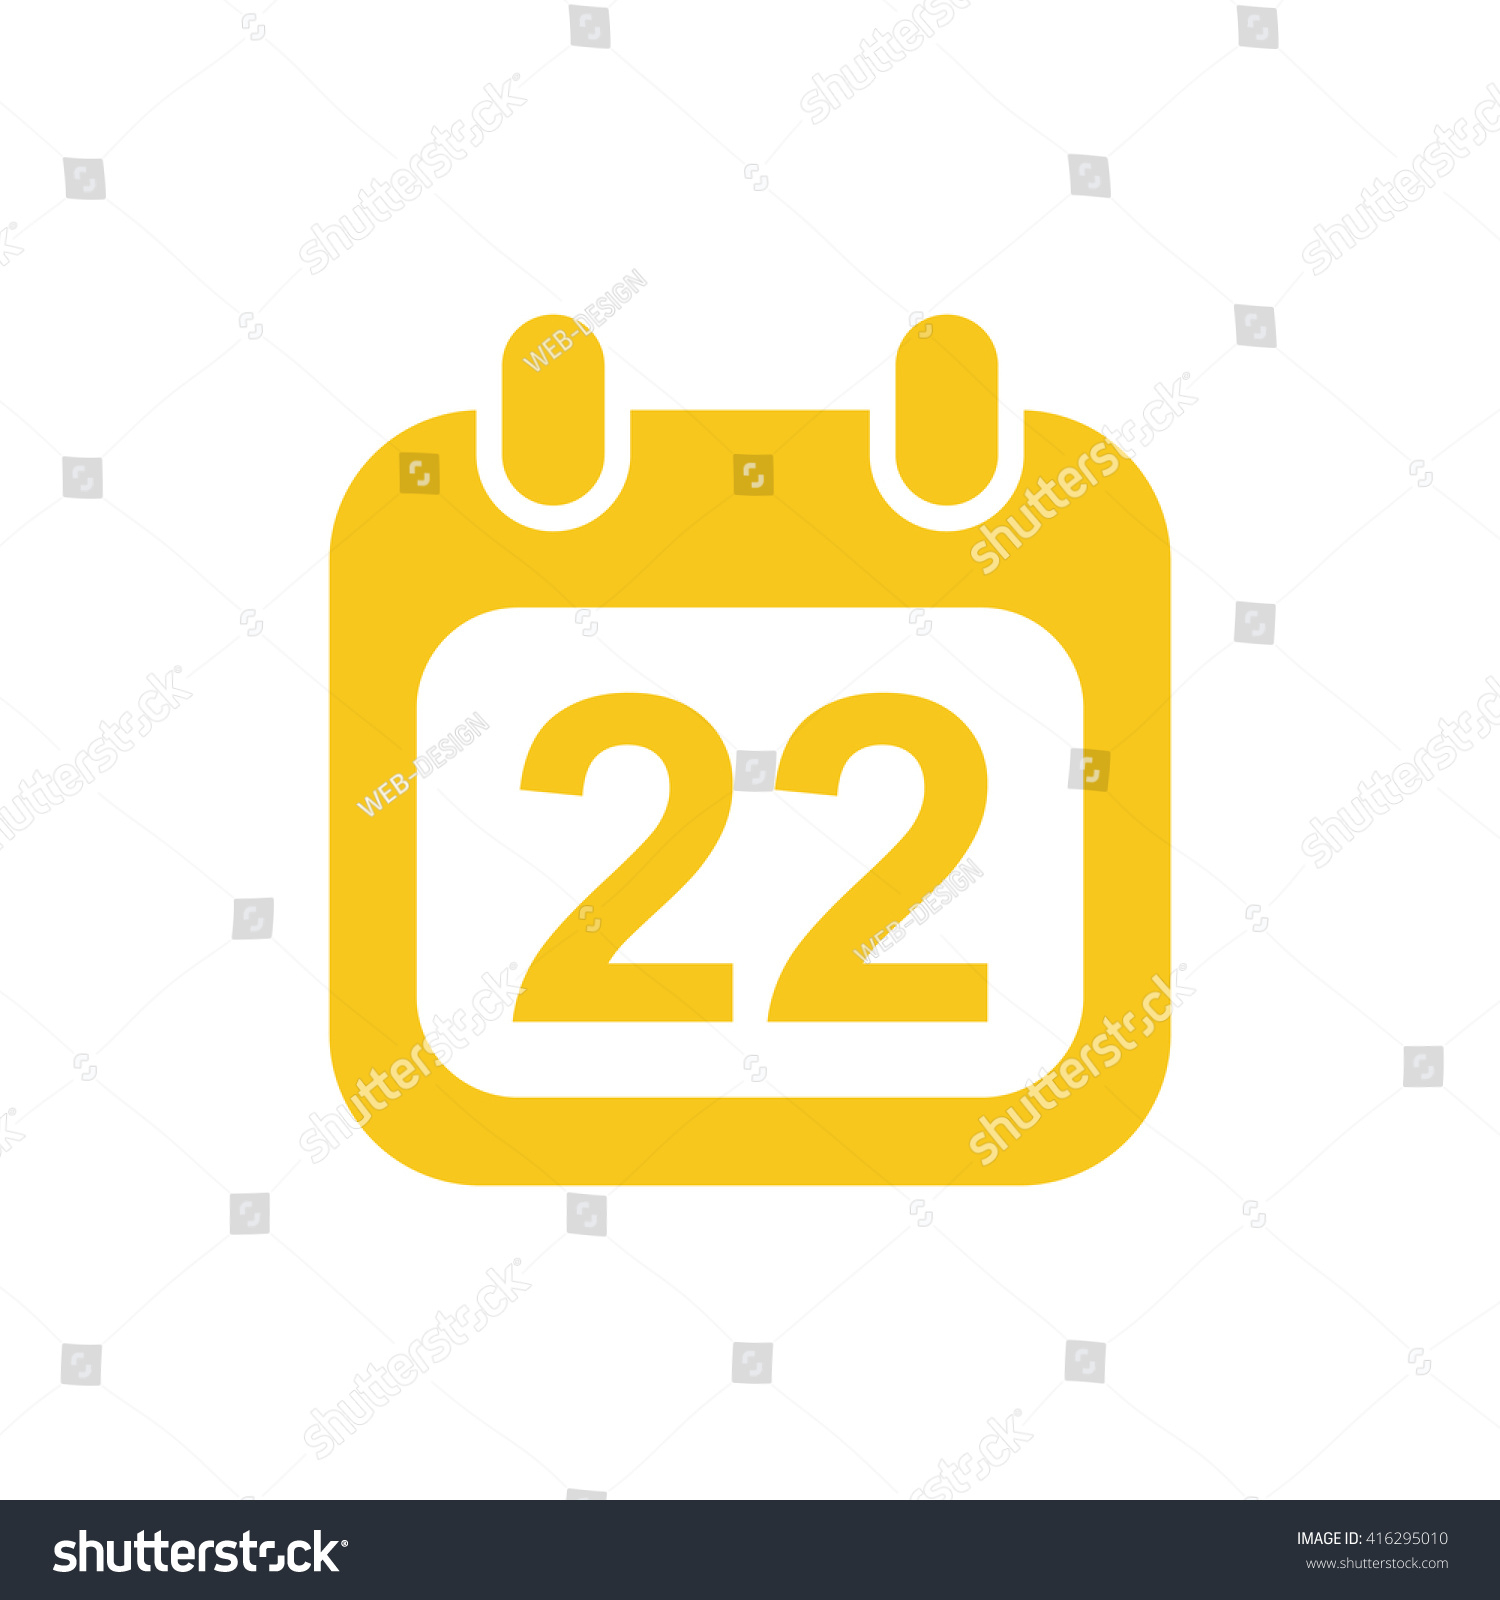 Calendar Icon Jpg Stock Vector (Royalty Free) 416295010 throughout Calendar Icon Jpg